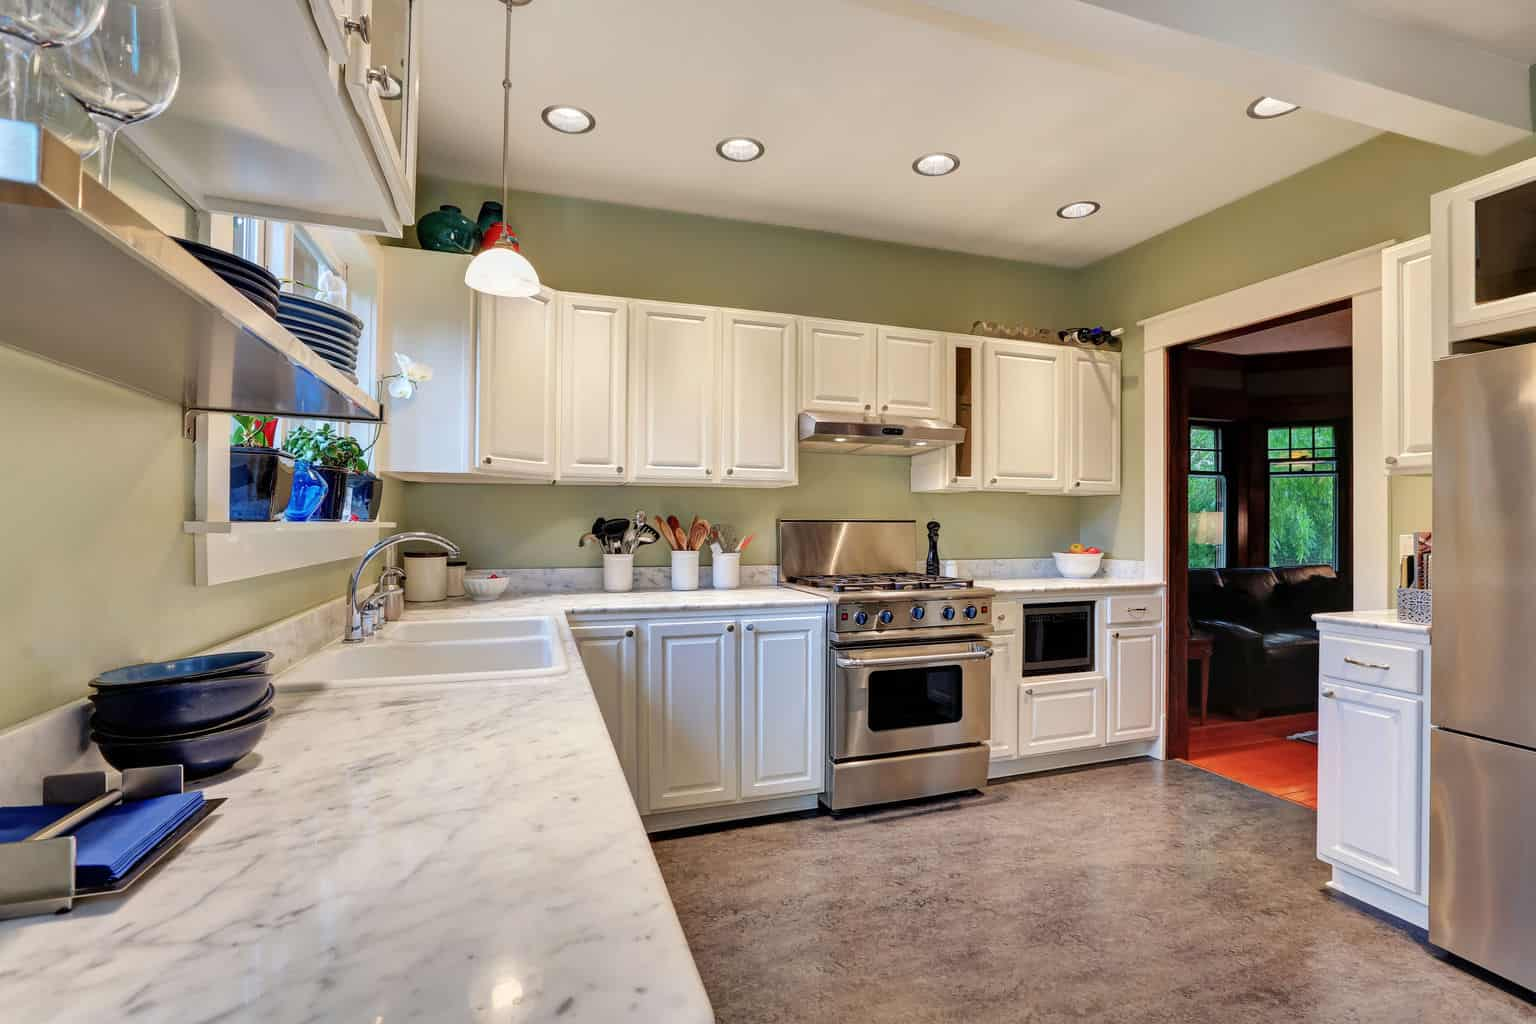 kitchen linoleum flooring linoleum kitchen flooring Perhaps the greatest selling point for linoleum is its durability it is water resistant stands up to the wear and tear of heavy traffic better than almost